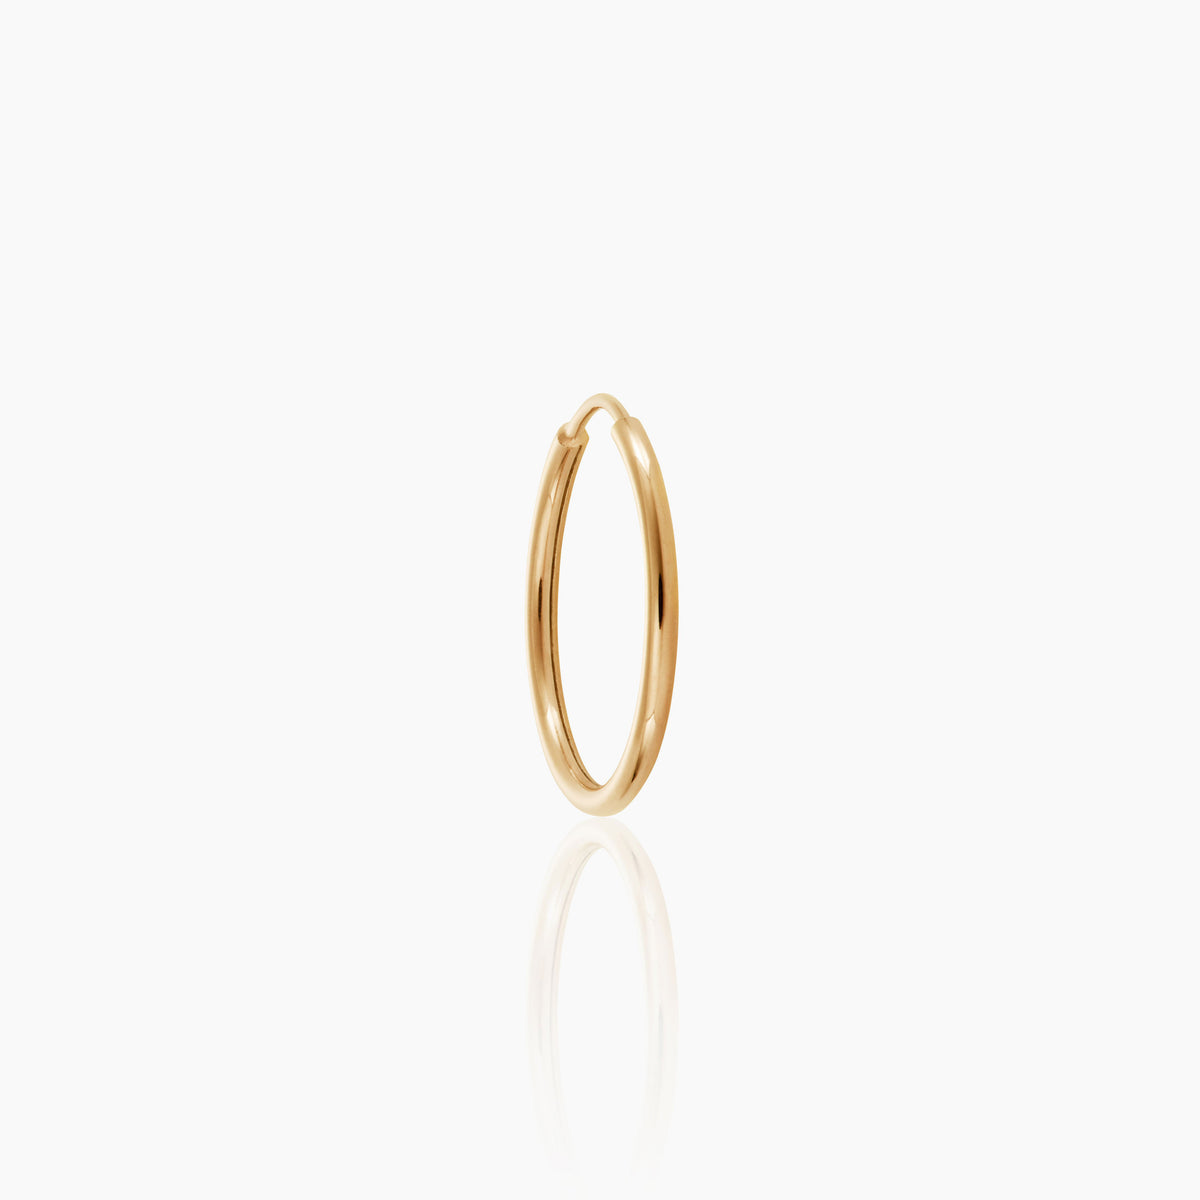 12mm Vermeil Endless Hoop